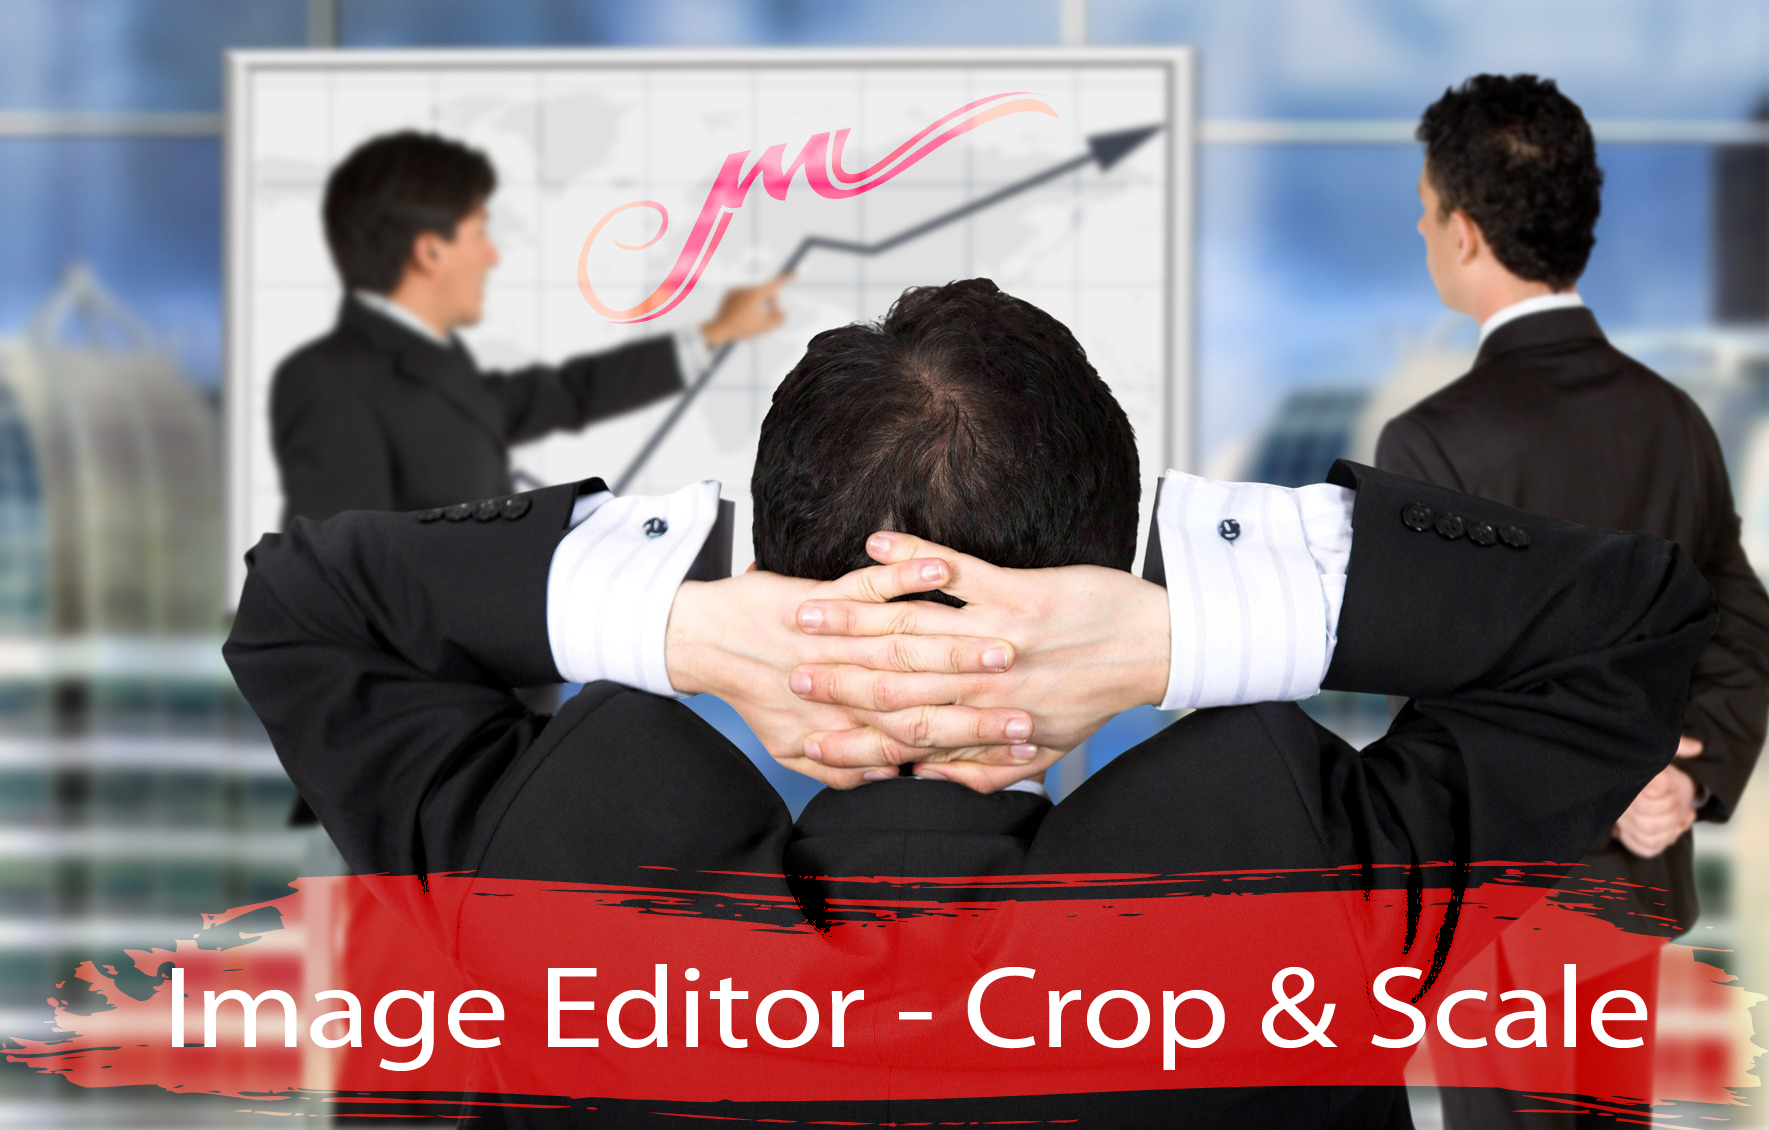 Image Editor – Crop & Scale